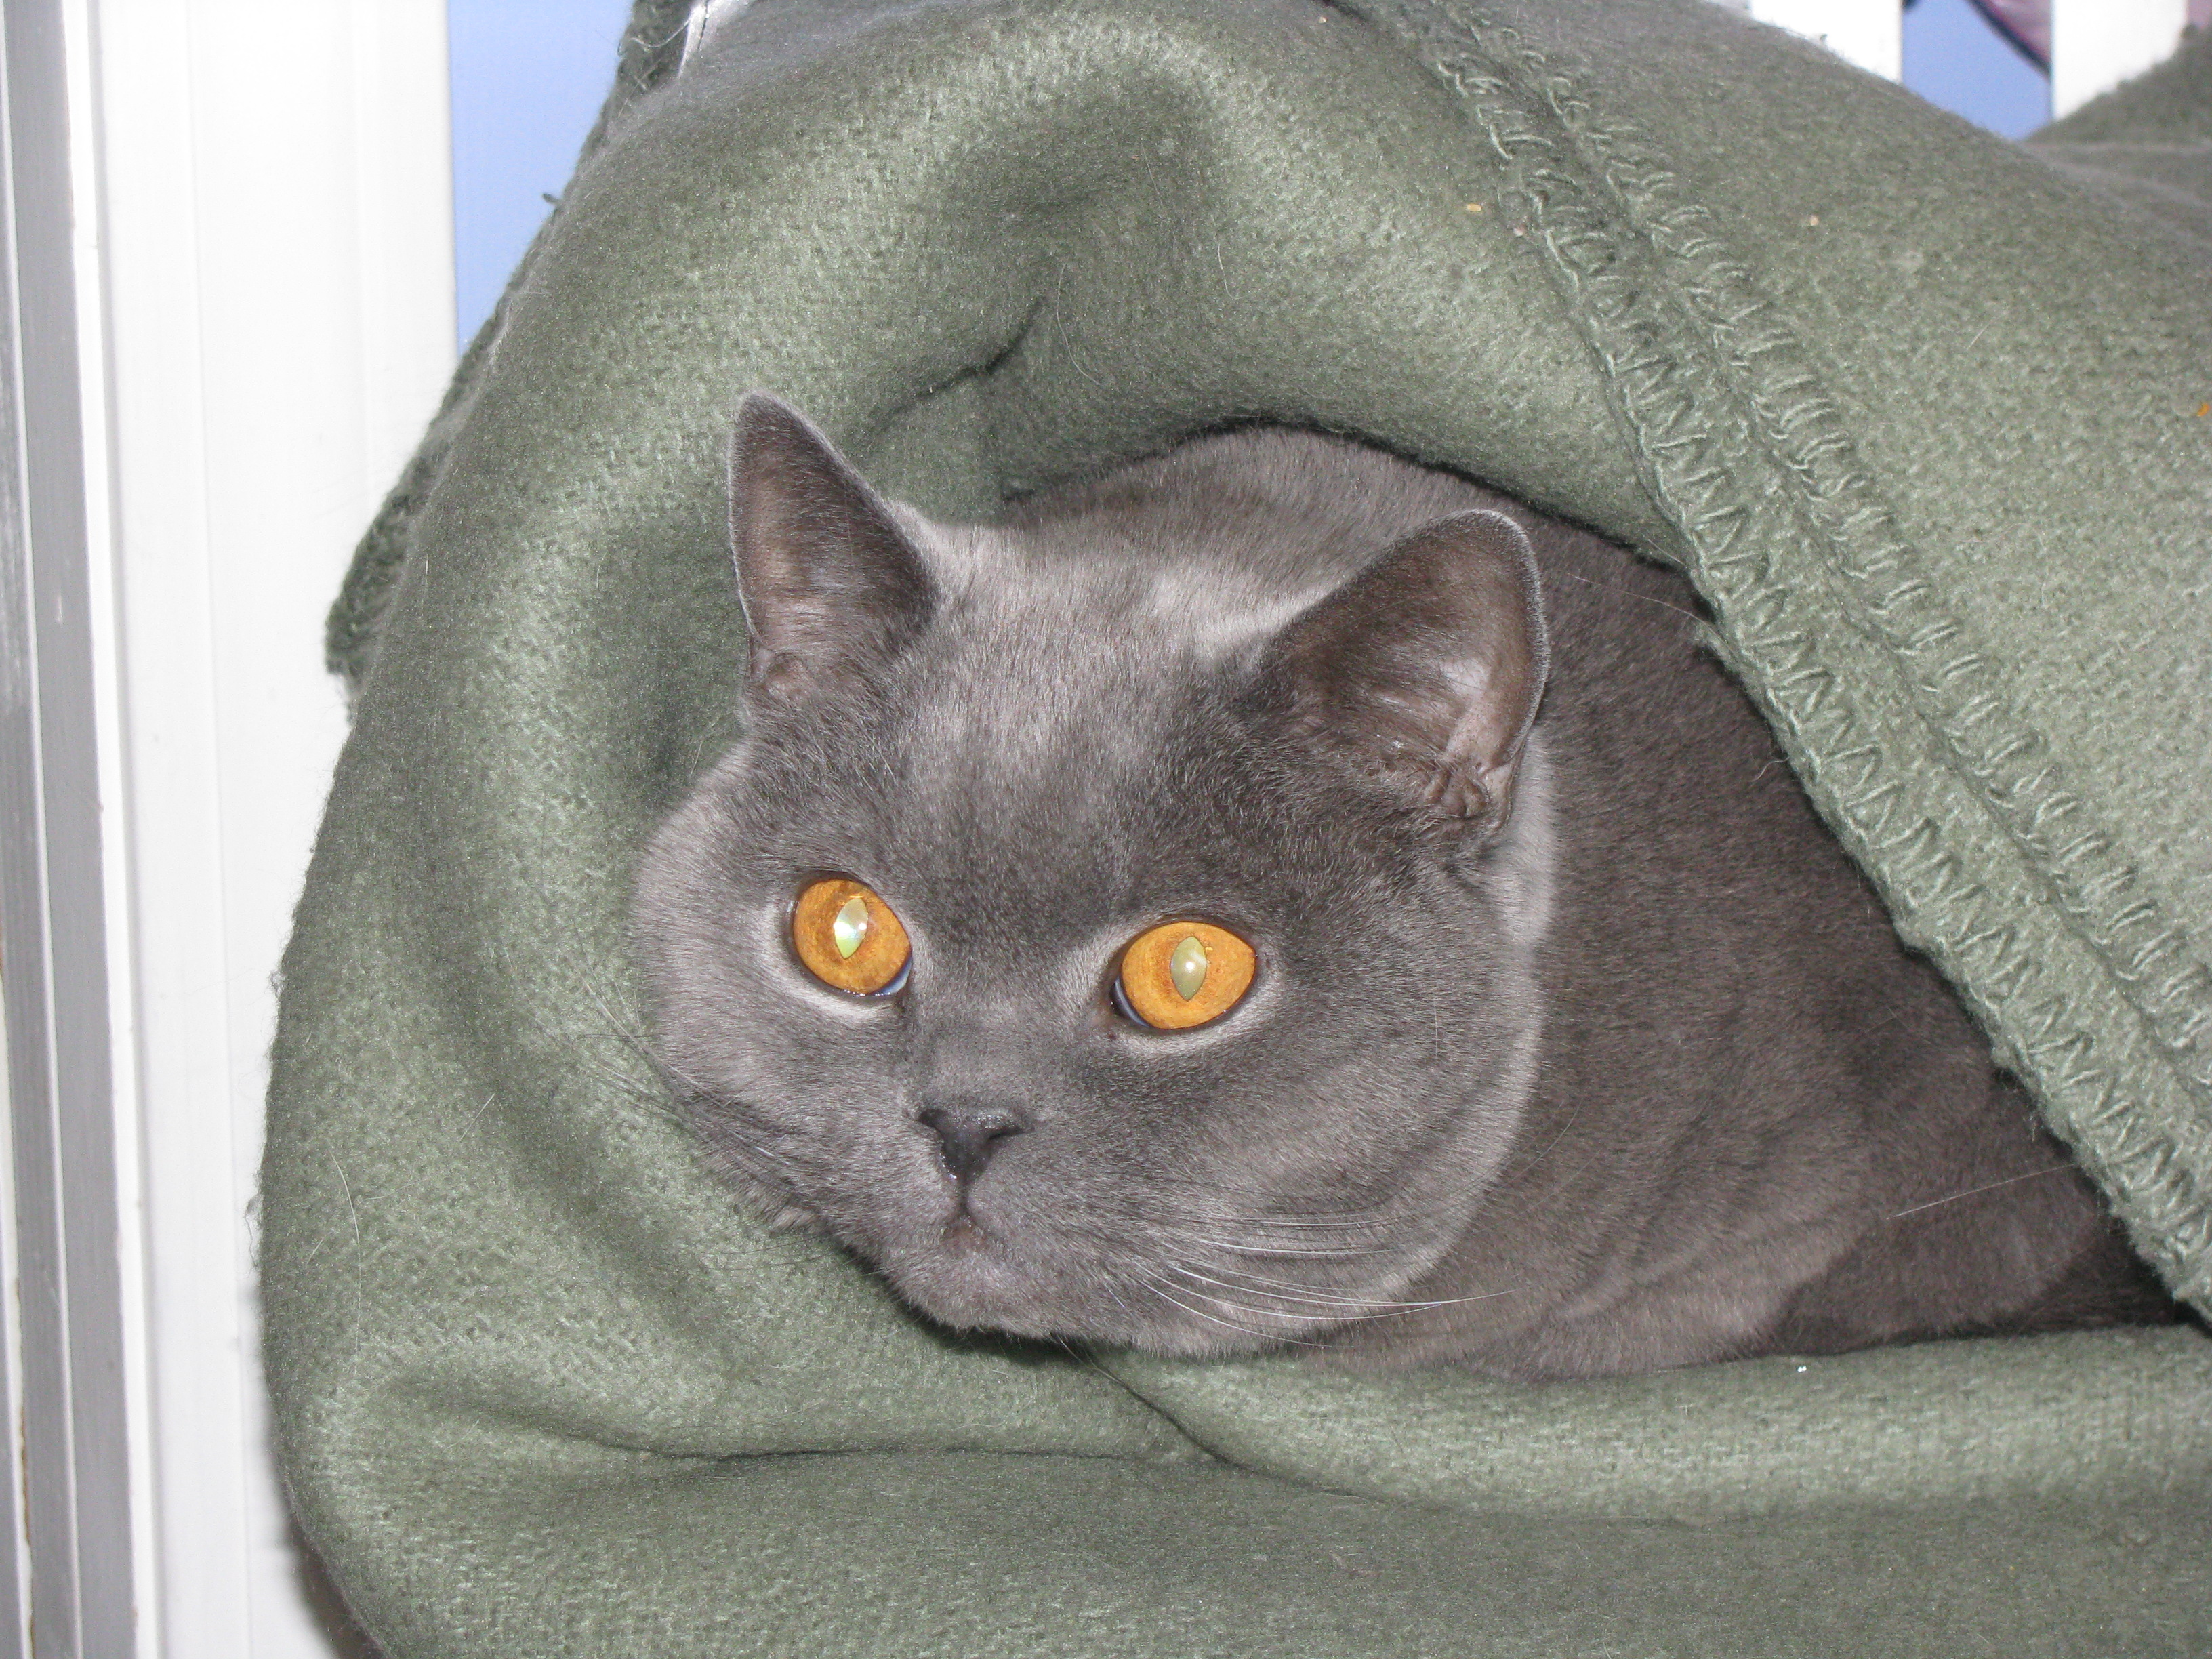 This shows his scary eyes really well, even though he cuddled up in a blanket.